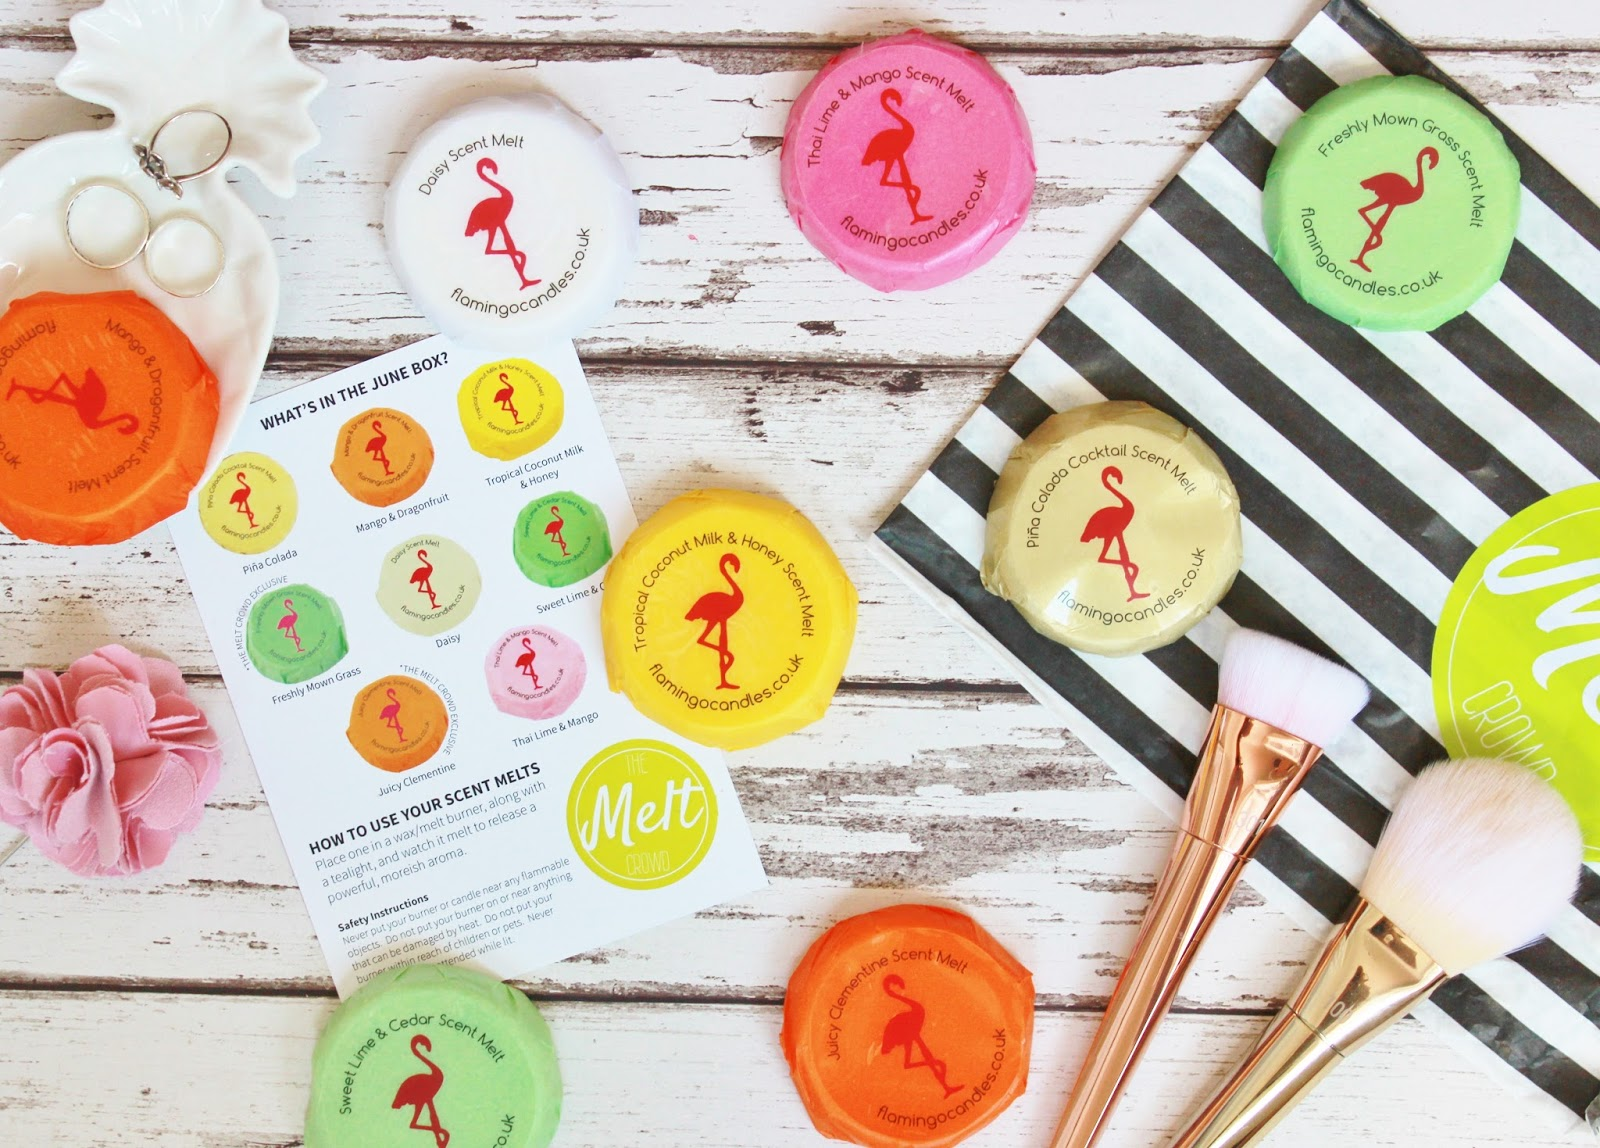 Flamingo Candles Melt Crowd June Subscription box